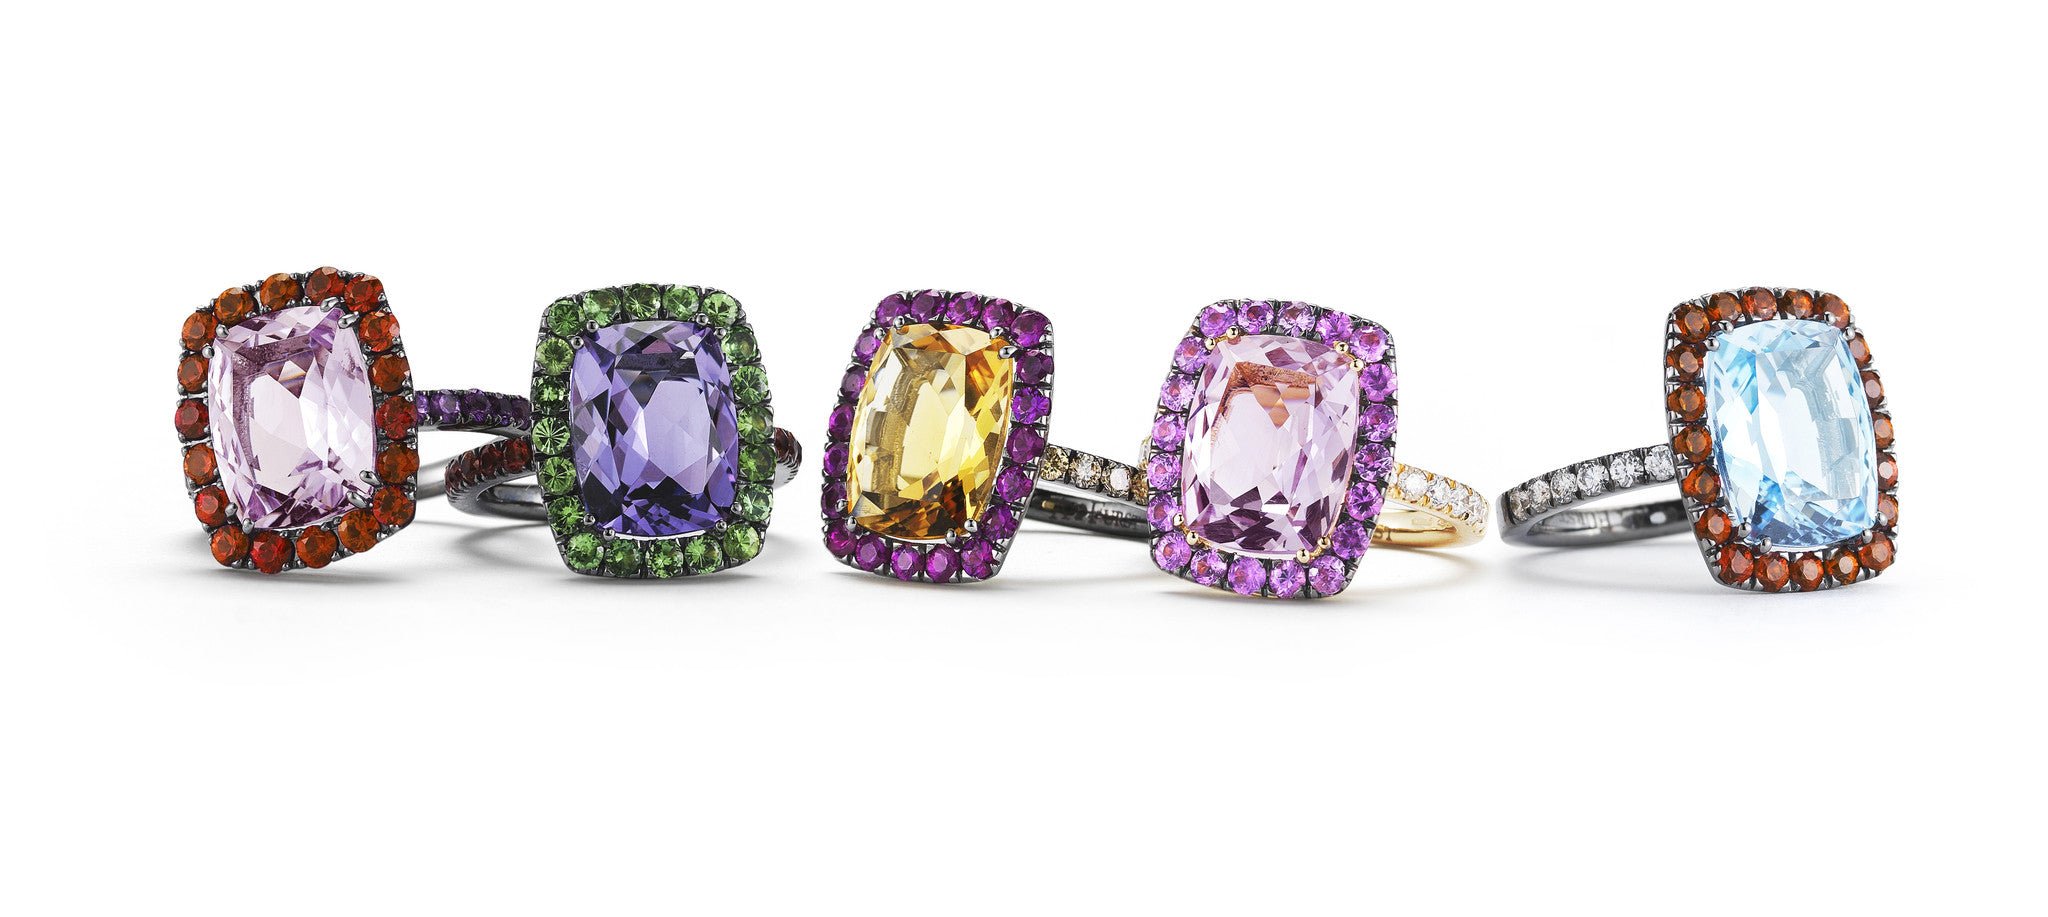 A-FURST-DYNAMITE-5-COCKTAIL-RINGS-ROSE-DE-FRANCE-AMETHYST-CITRINE-ROSE-DE-FRANCE-BLUE-TOPAZ